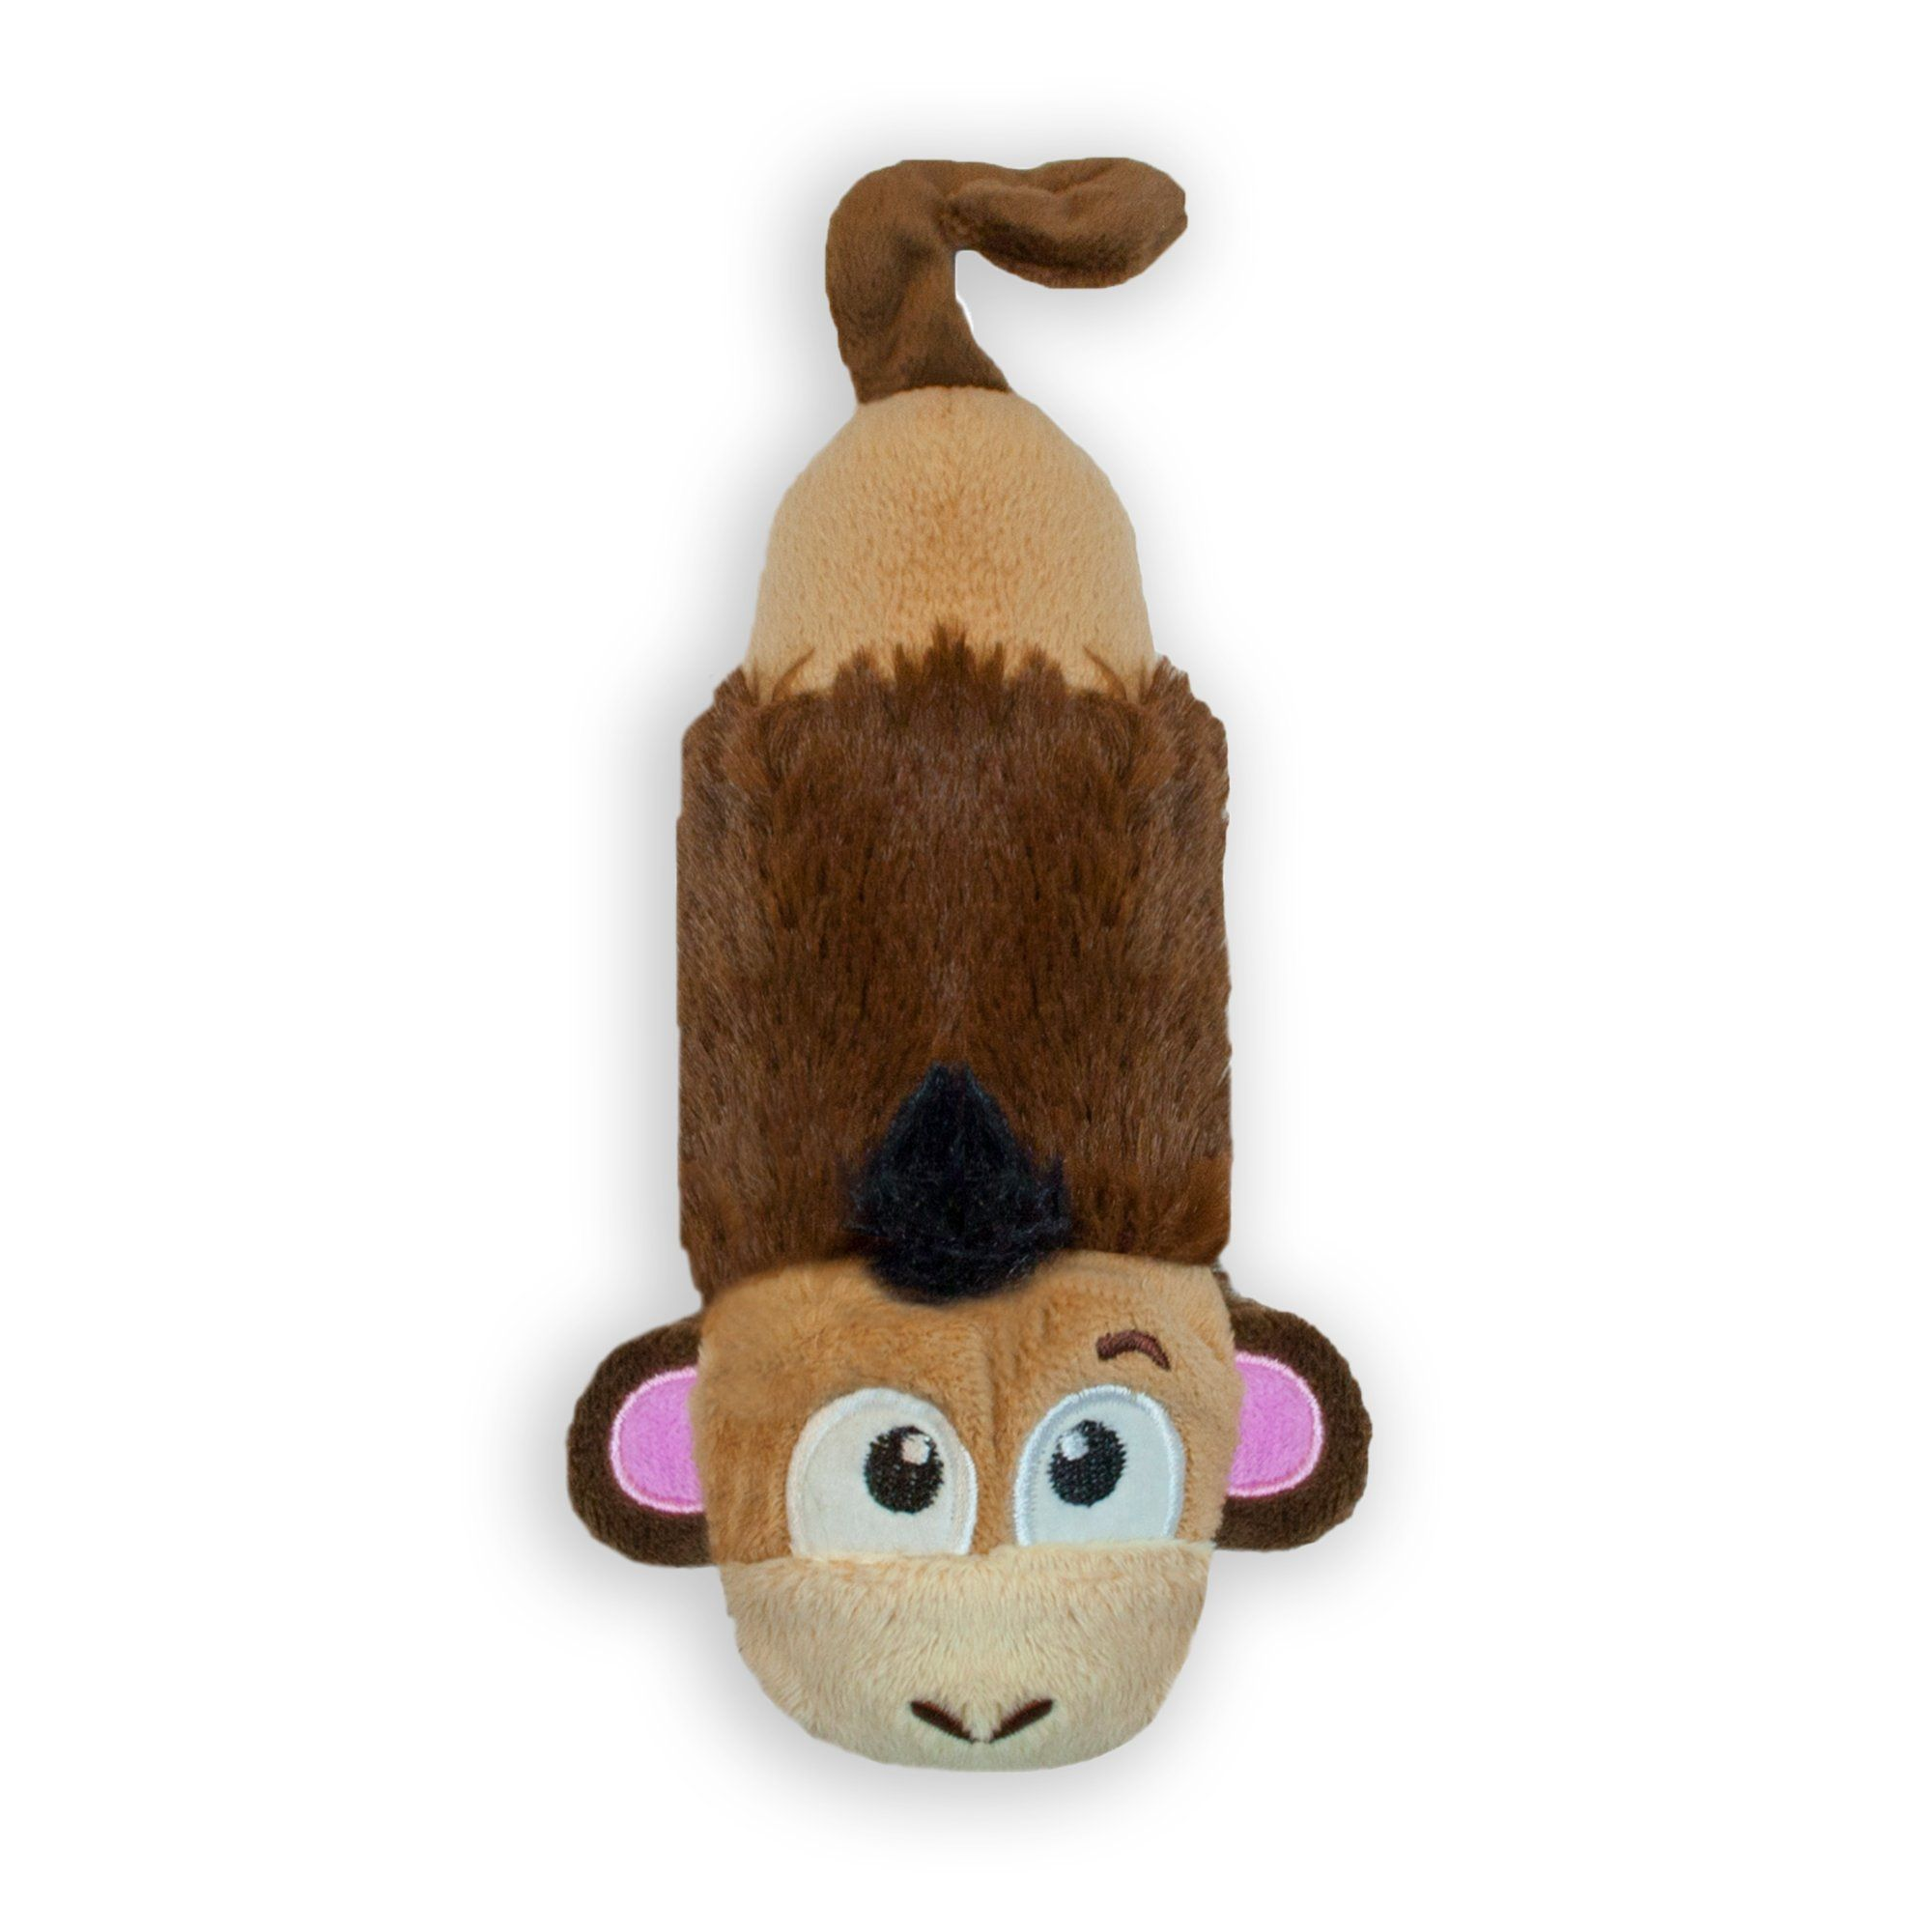 Petstages Just For Fun No Stuffing Plush Lil Squeak Monkey Dog Toy